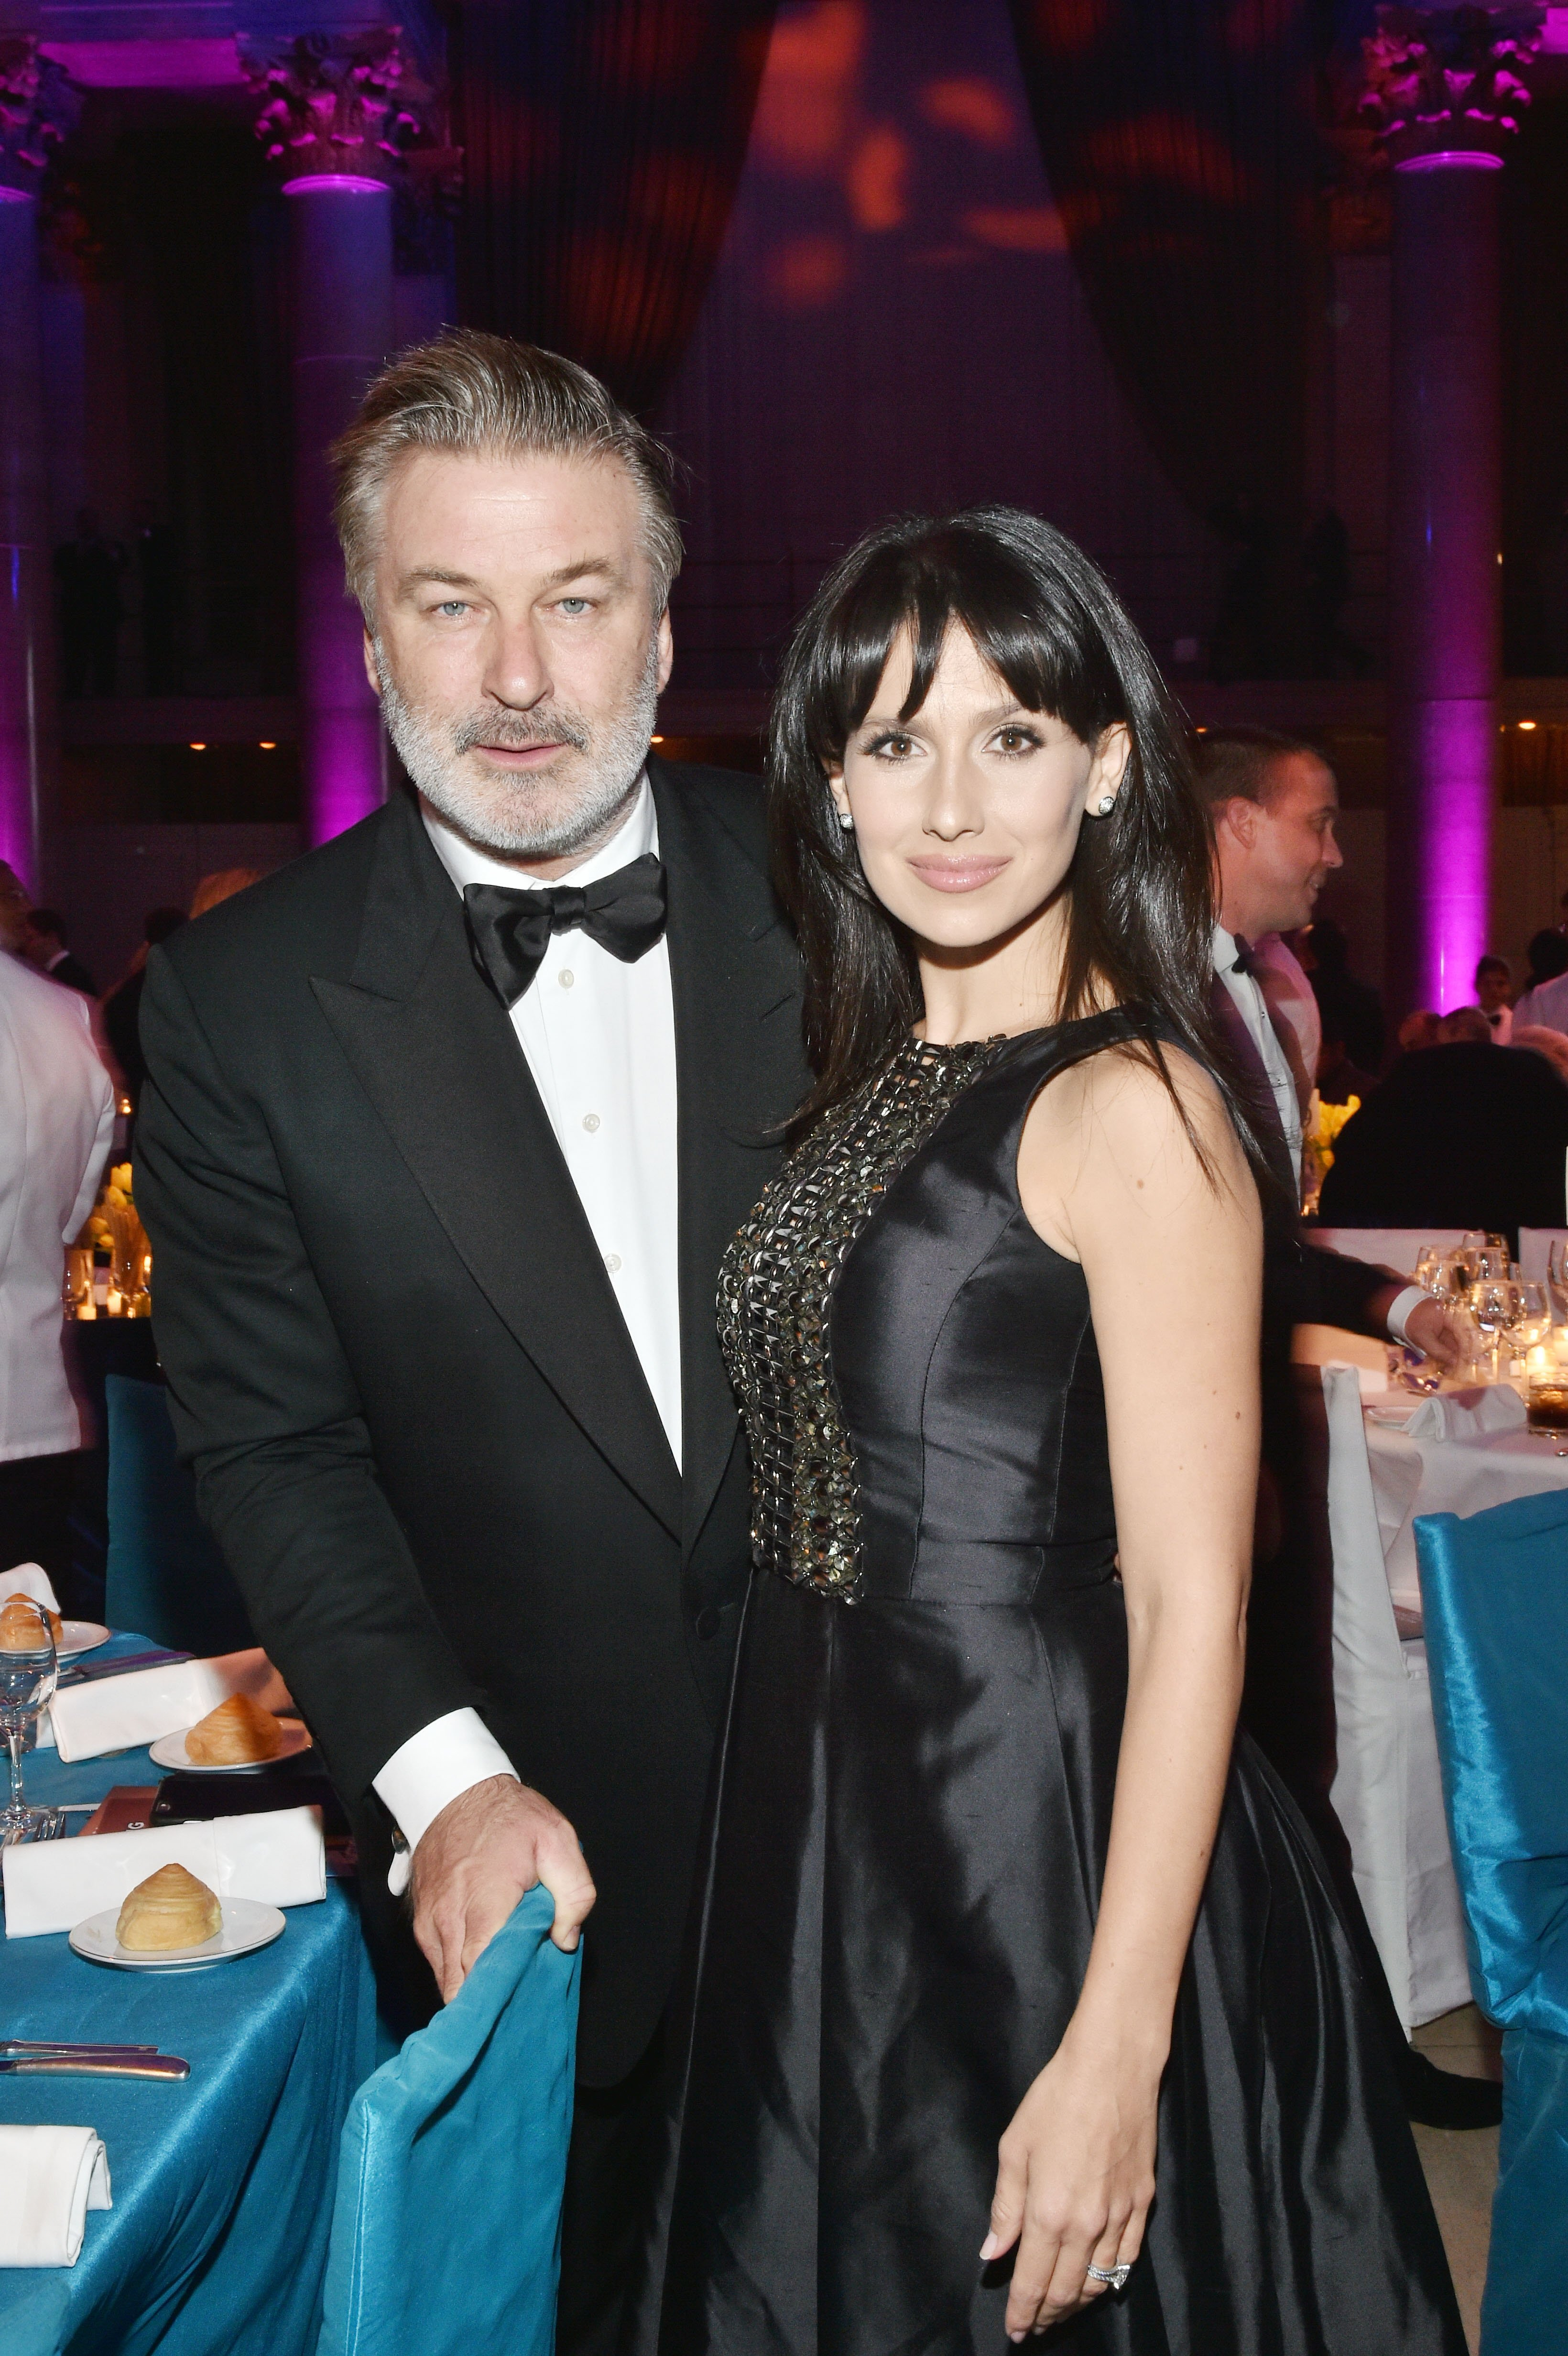 Alec Baldwin (L) and Hilaria Baldwin (R) attend Elton John AIDS Foundation's 14th Annual An Enduring Vision Benefit at Cipriani Wall Street on November 2, 2015, in New York City. | Source: Getty Images.